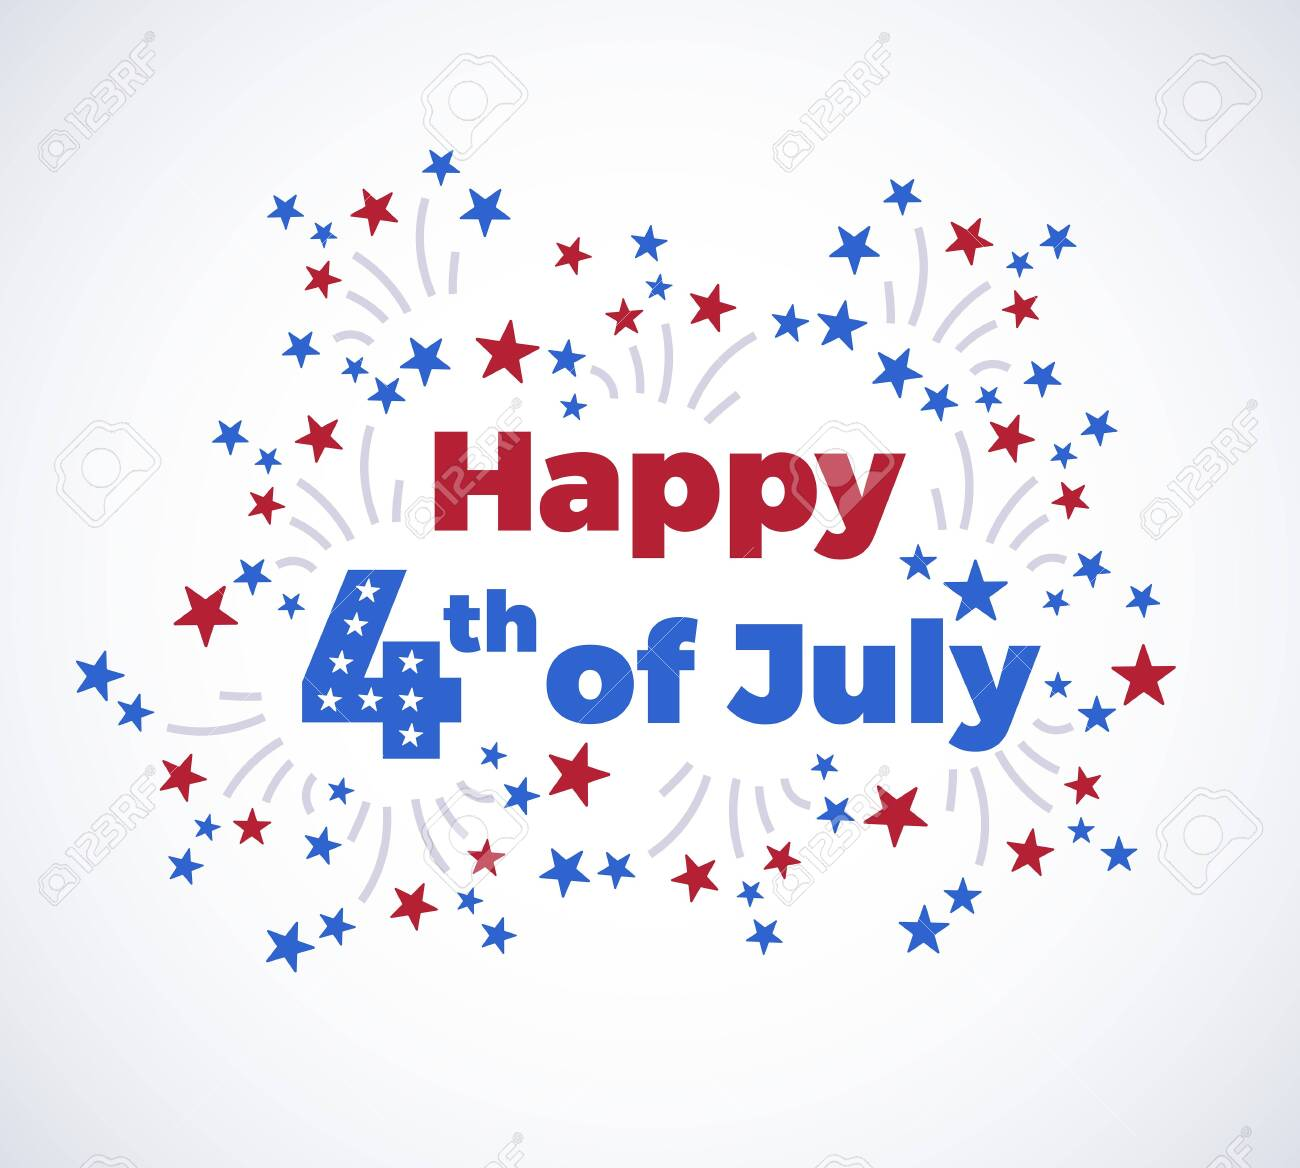 Fourth of July typography background with fireworks in modern flat style - American Independence Day illustration - 4th of July typographic design - 147504756